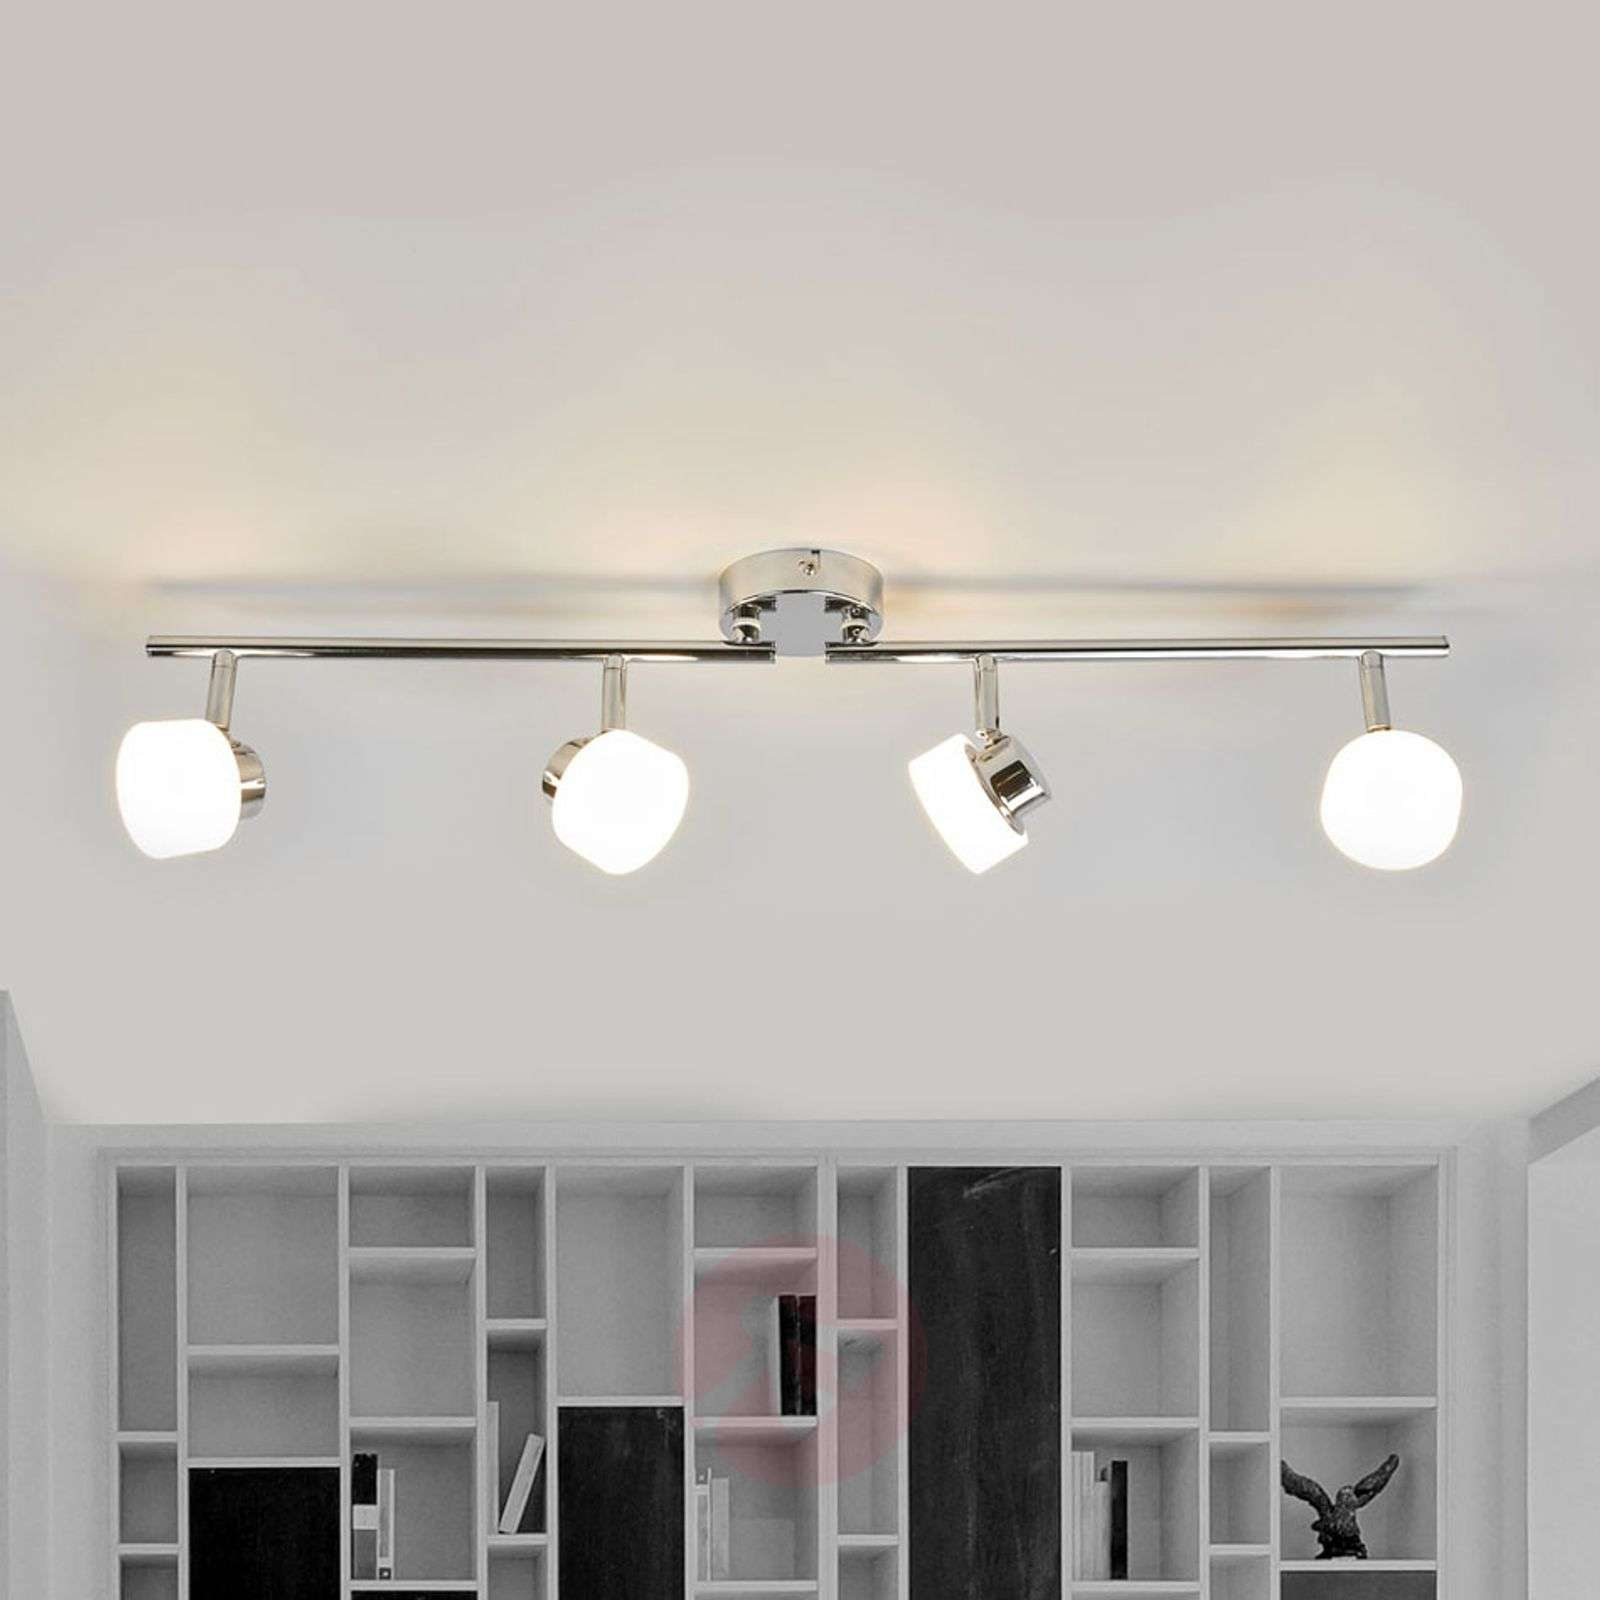 Shia LED ceiling lamp with chrome frame | Lights.co.uk